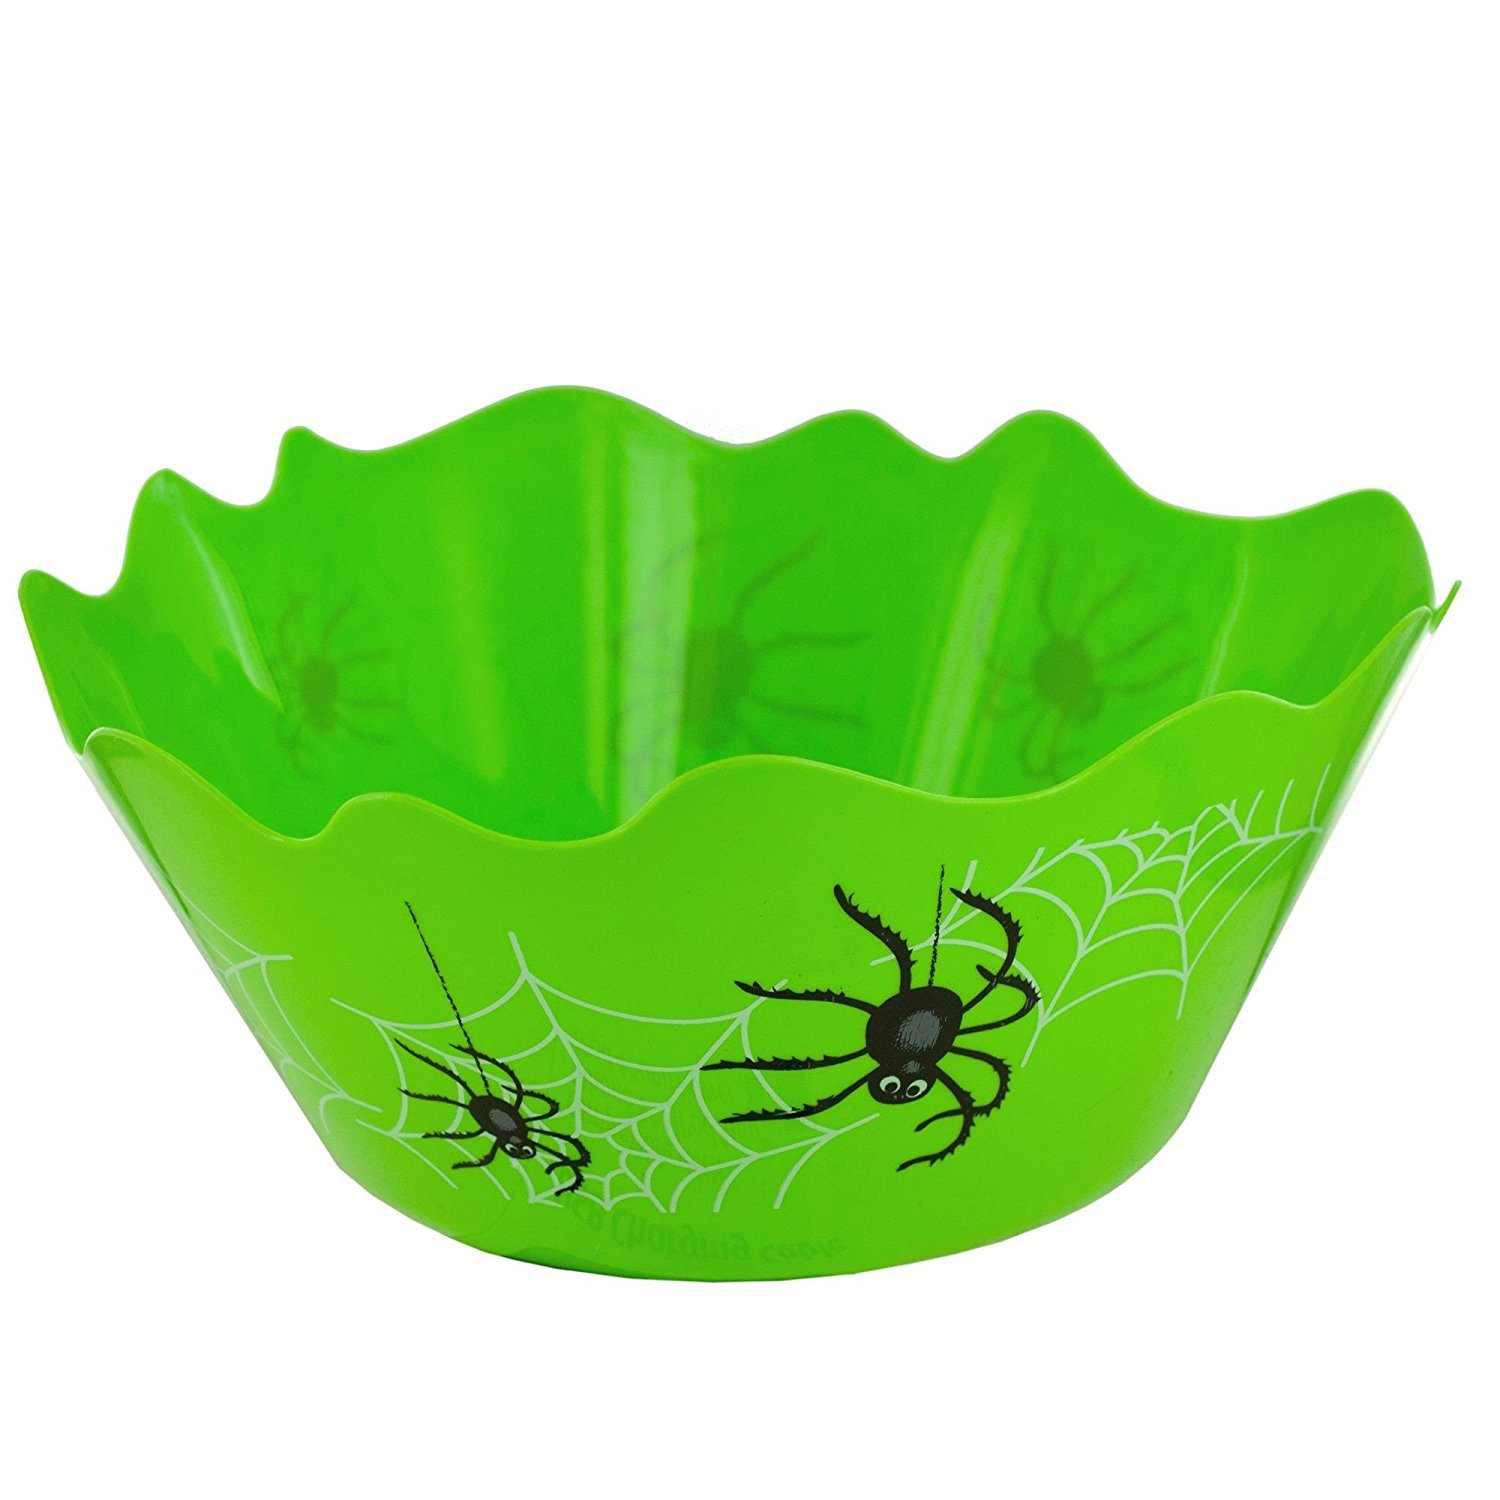 Premium Halloween Green Flexible Spider Candy Trick Or Treat Bowl BPA Free - Large Size 4.7Qt